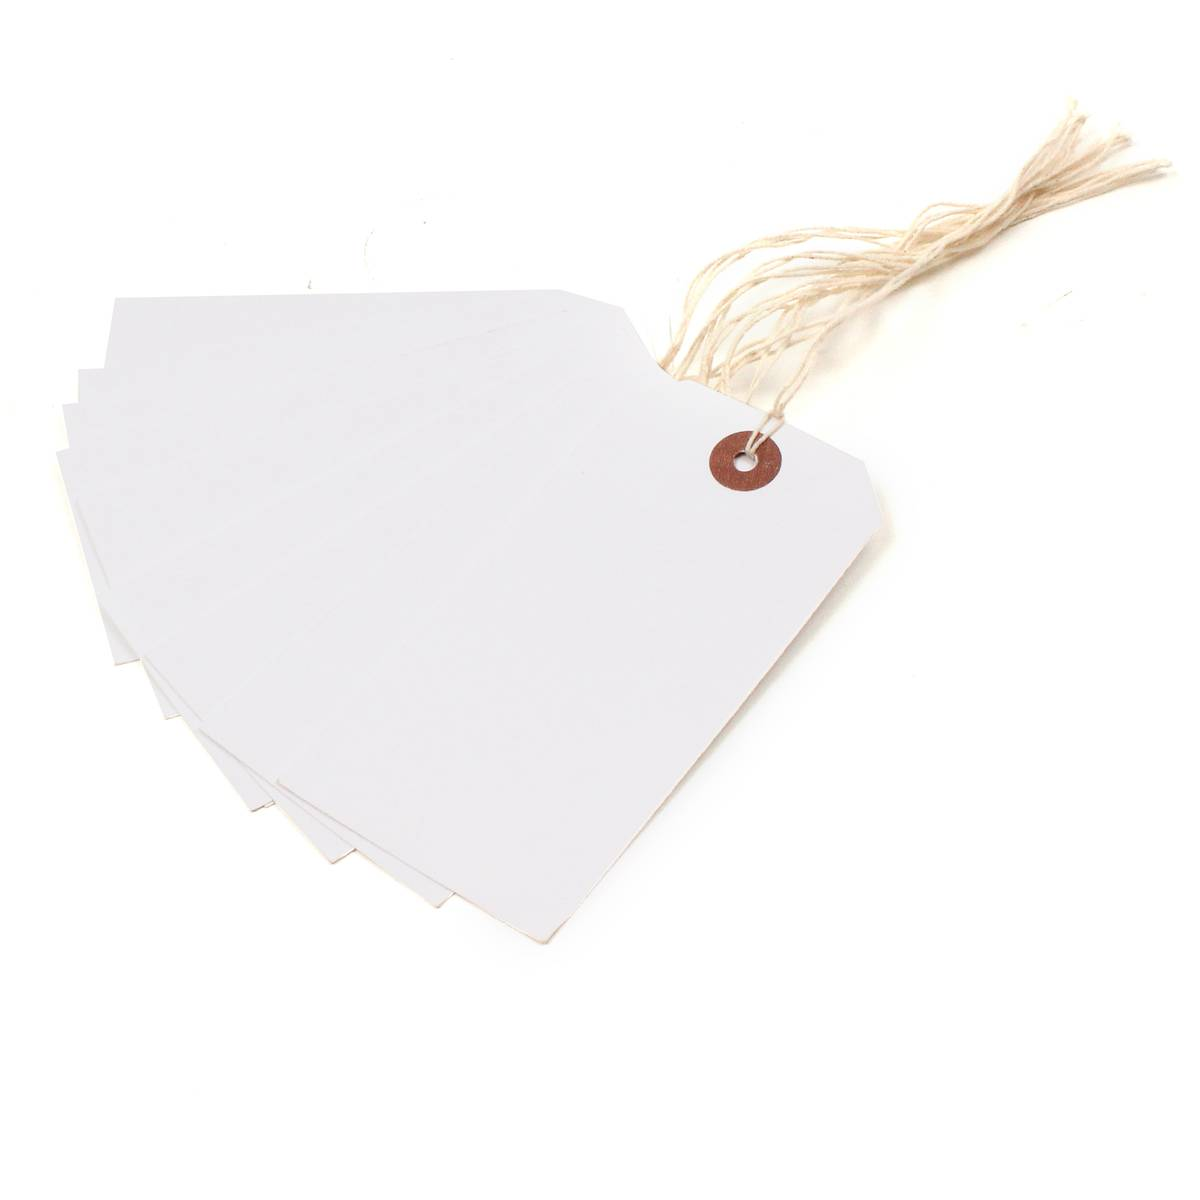 Blick White Luggage Tags 10 Pack